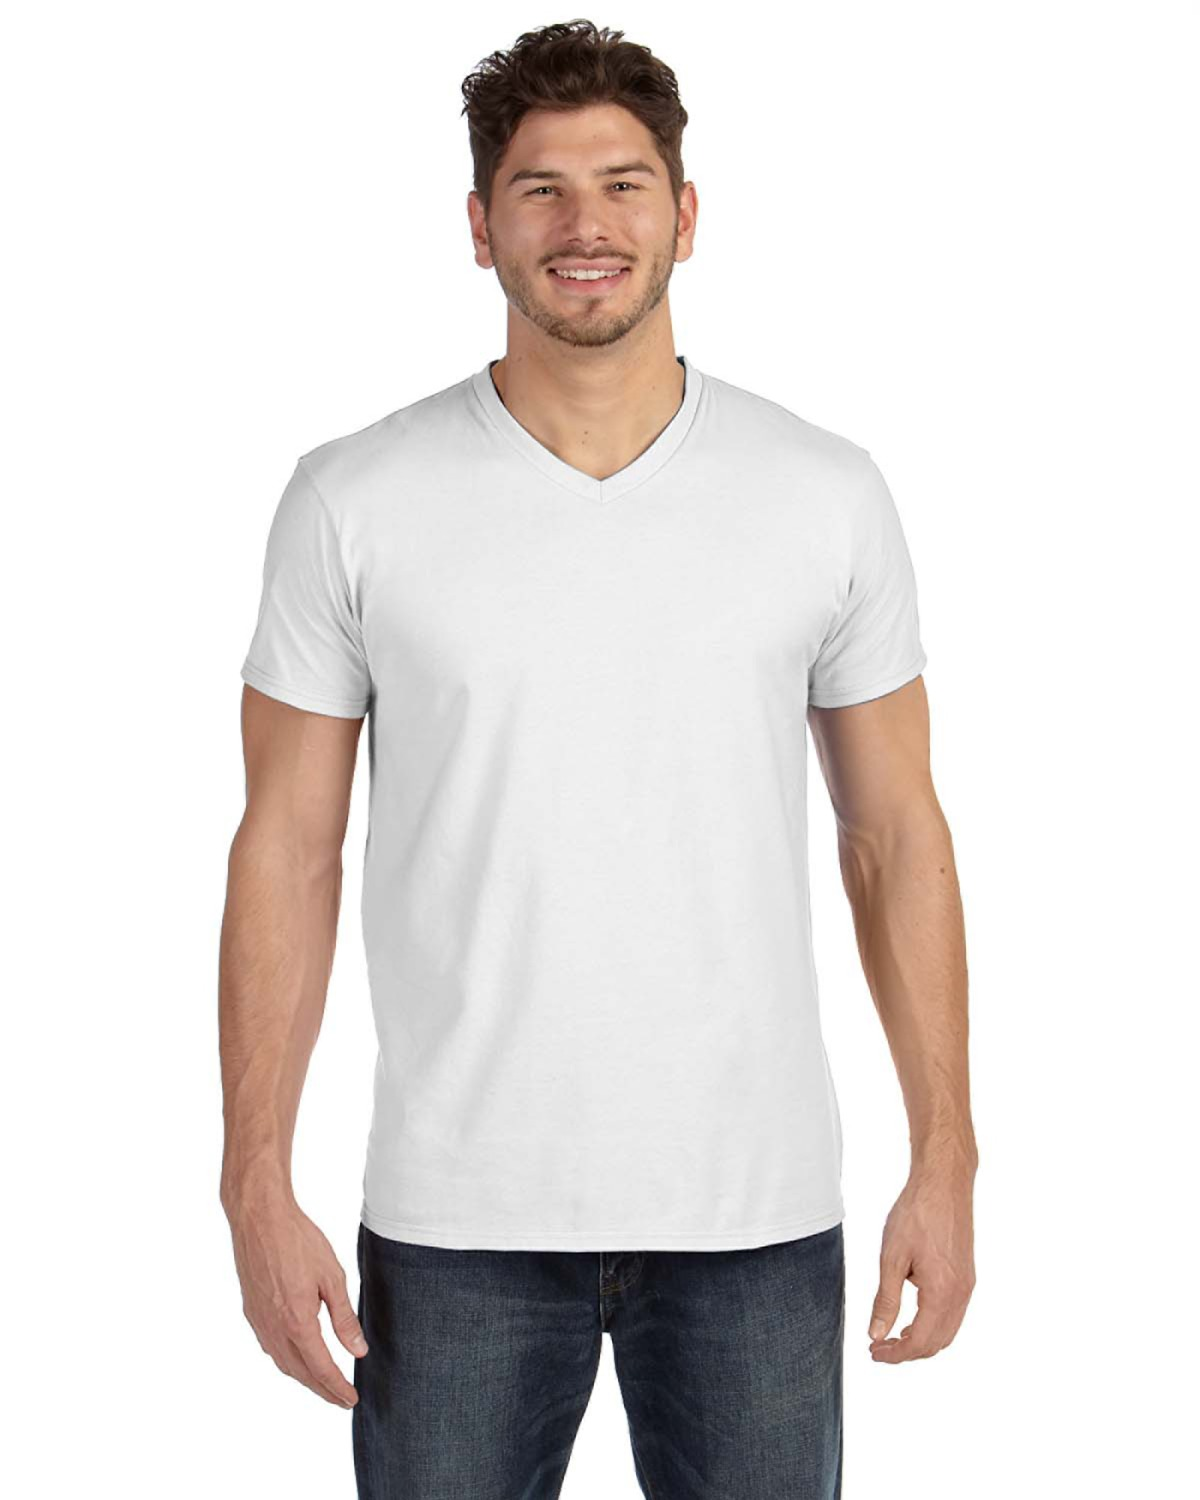 Hanes 498V - 4.5 oz., 100% Ringspun Cotton nano-T® V-Neck T-Shirt